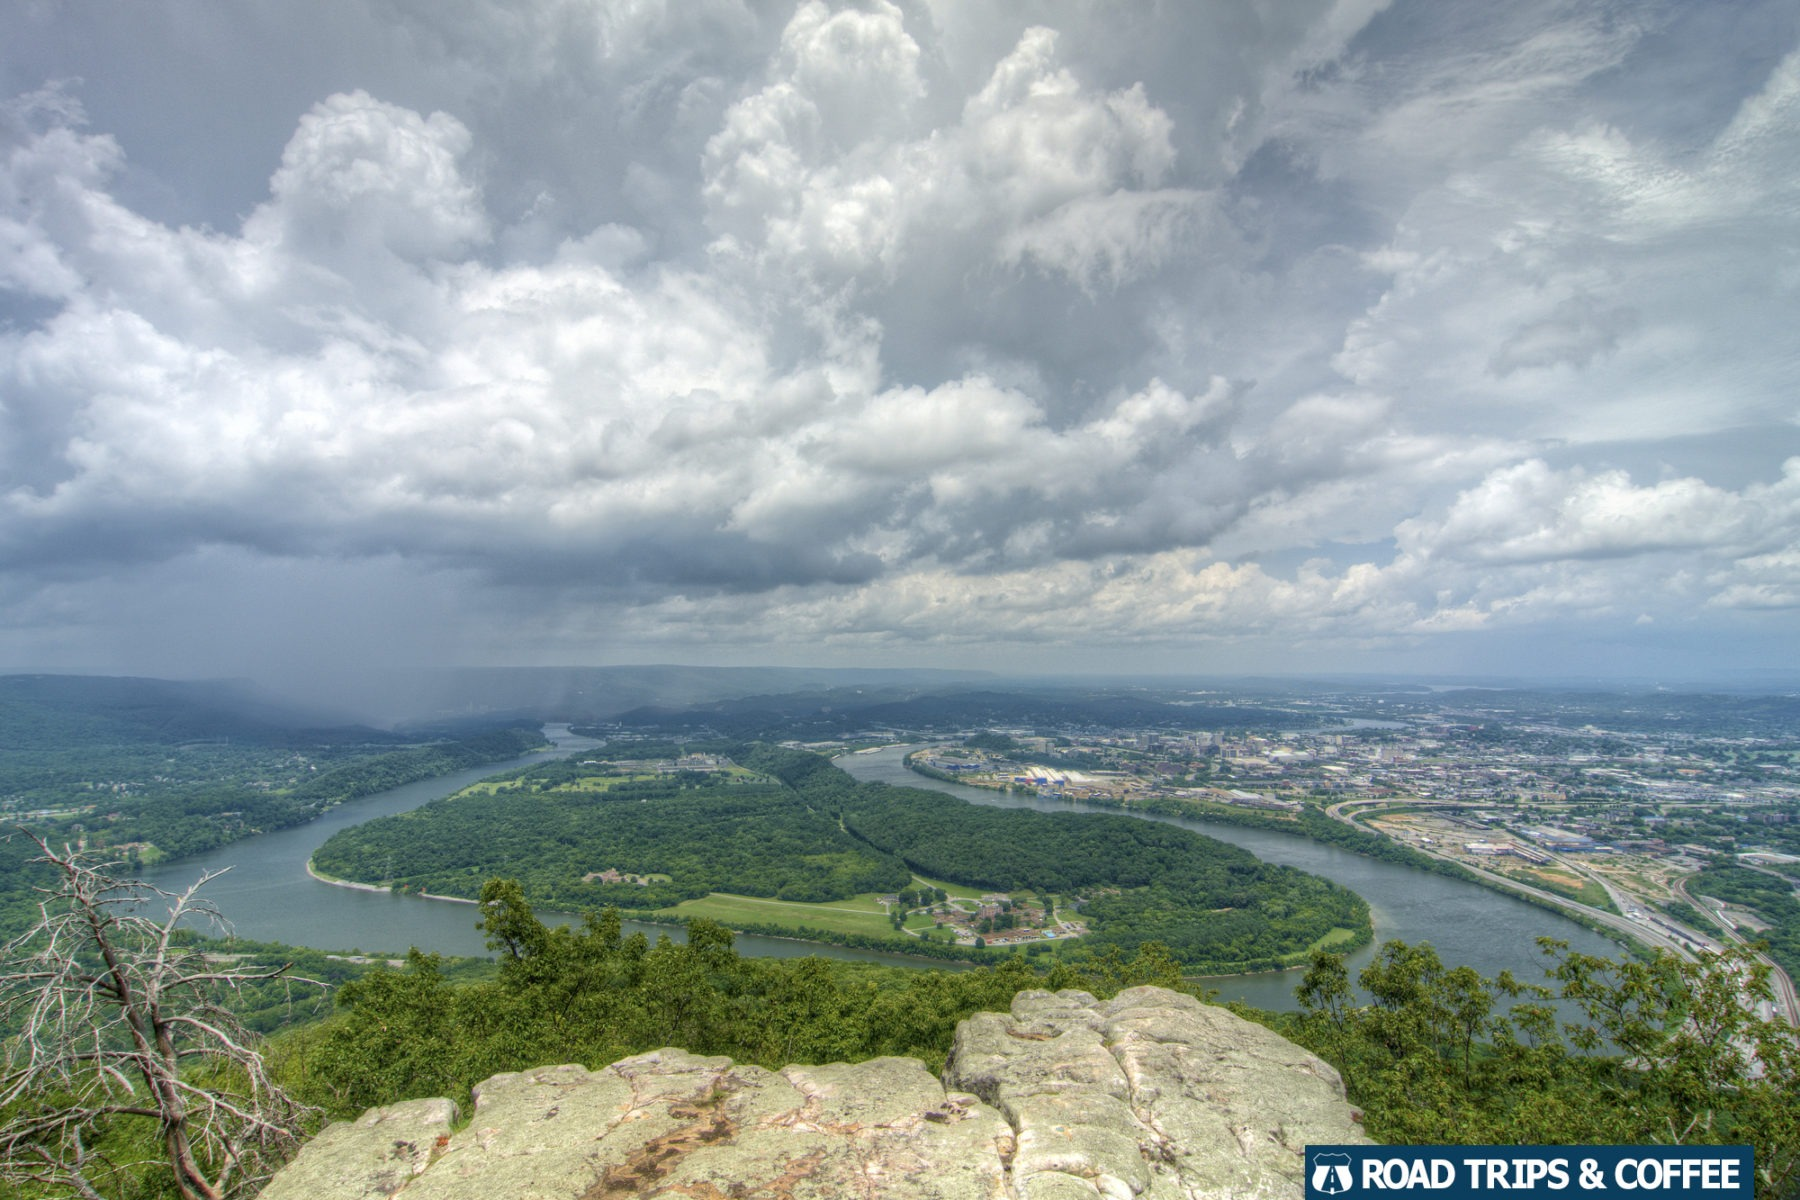 A summer thunderstorm passes across the bend in the Tennessee River heading for downtown Chattanooga, Tennessee